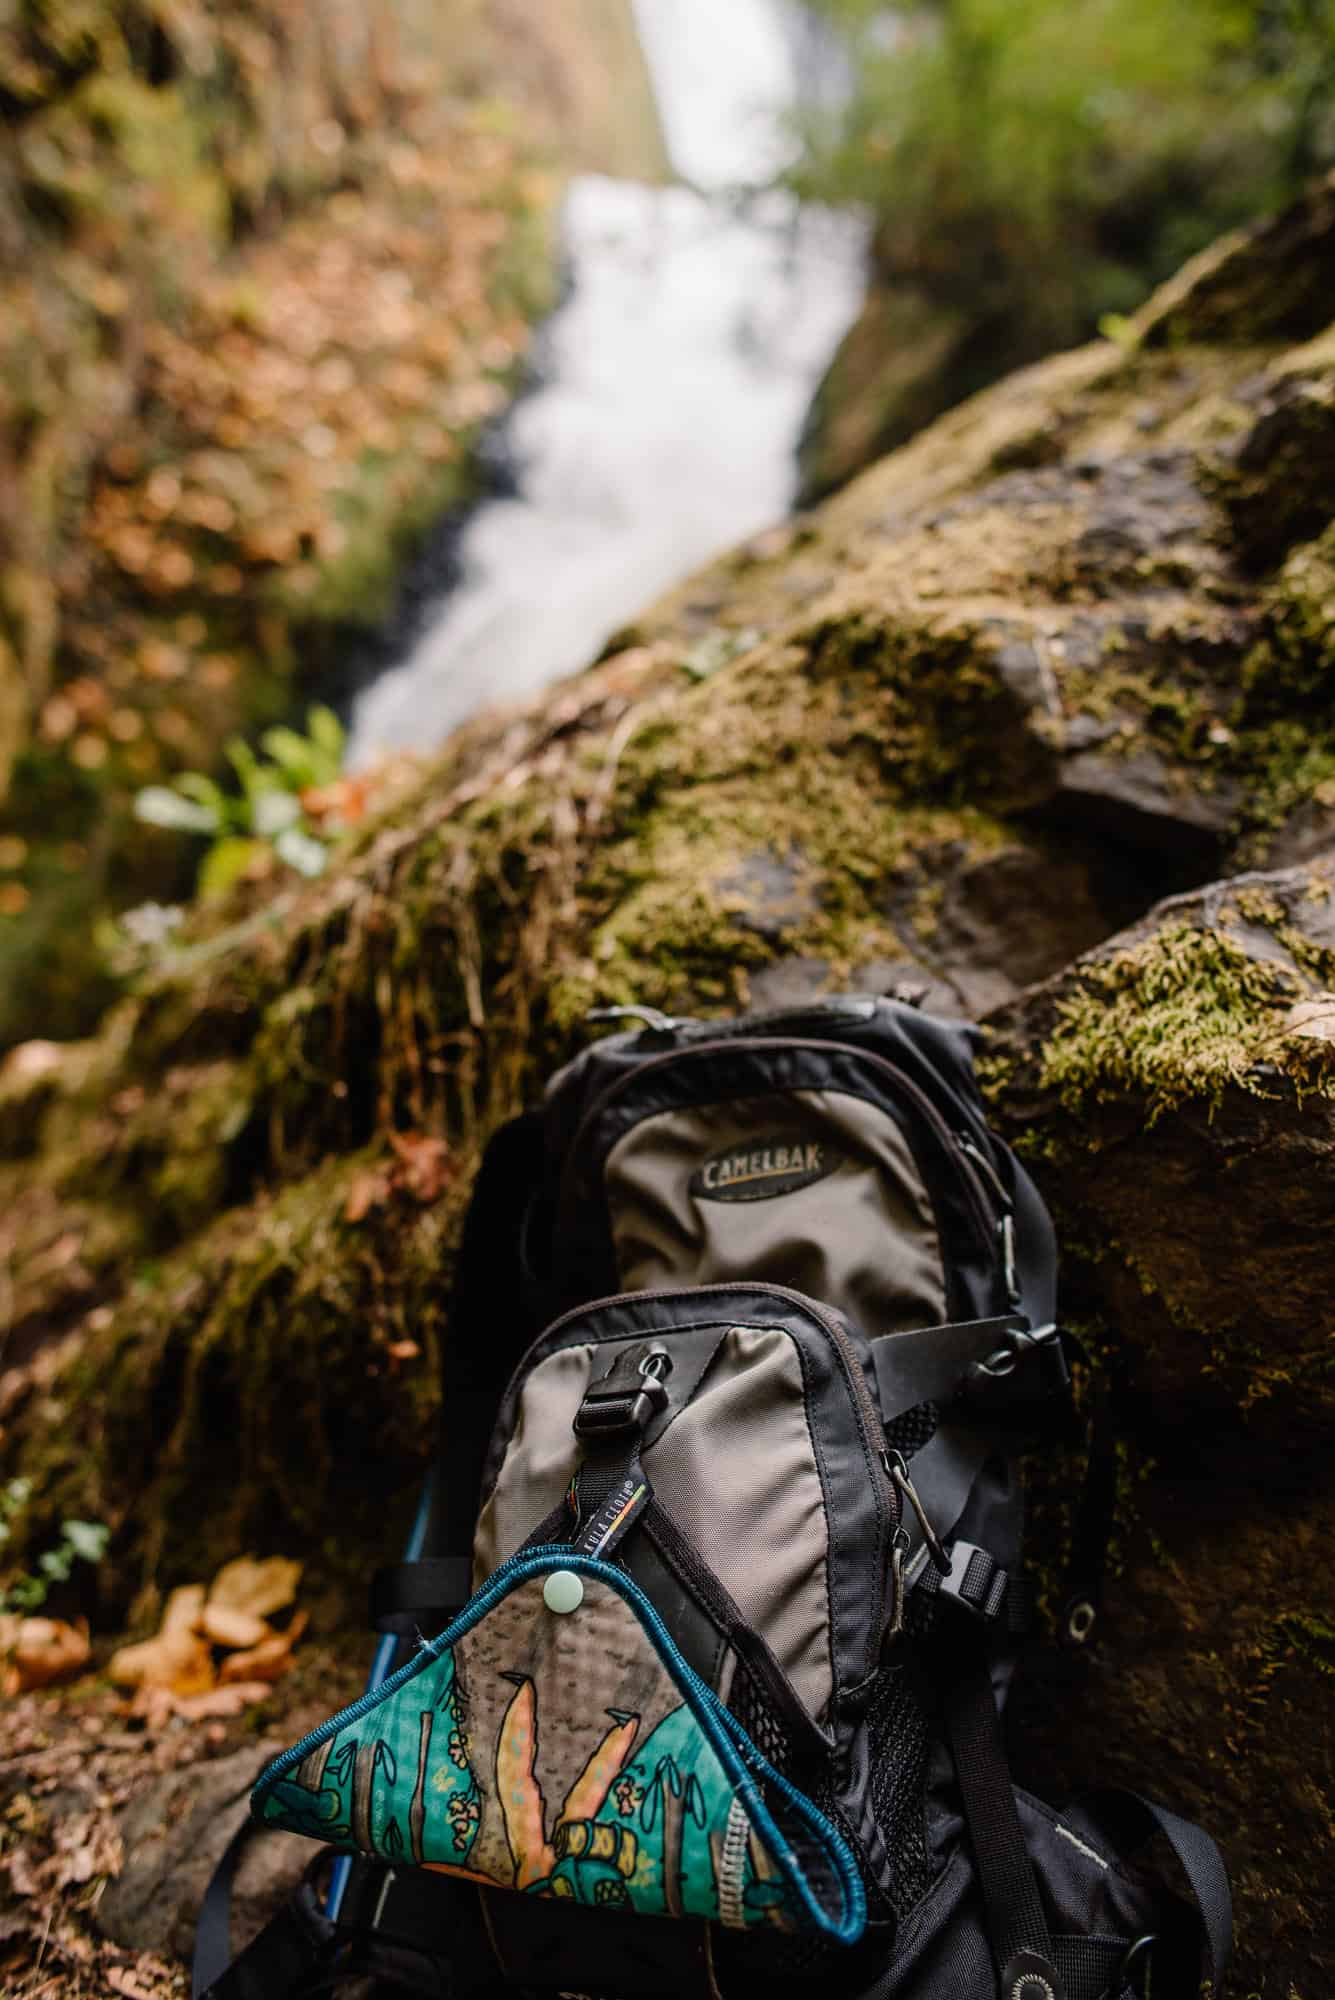 kula cloth on a backpack by a waterfall